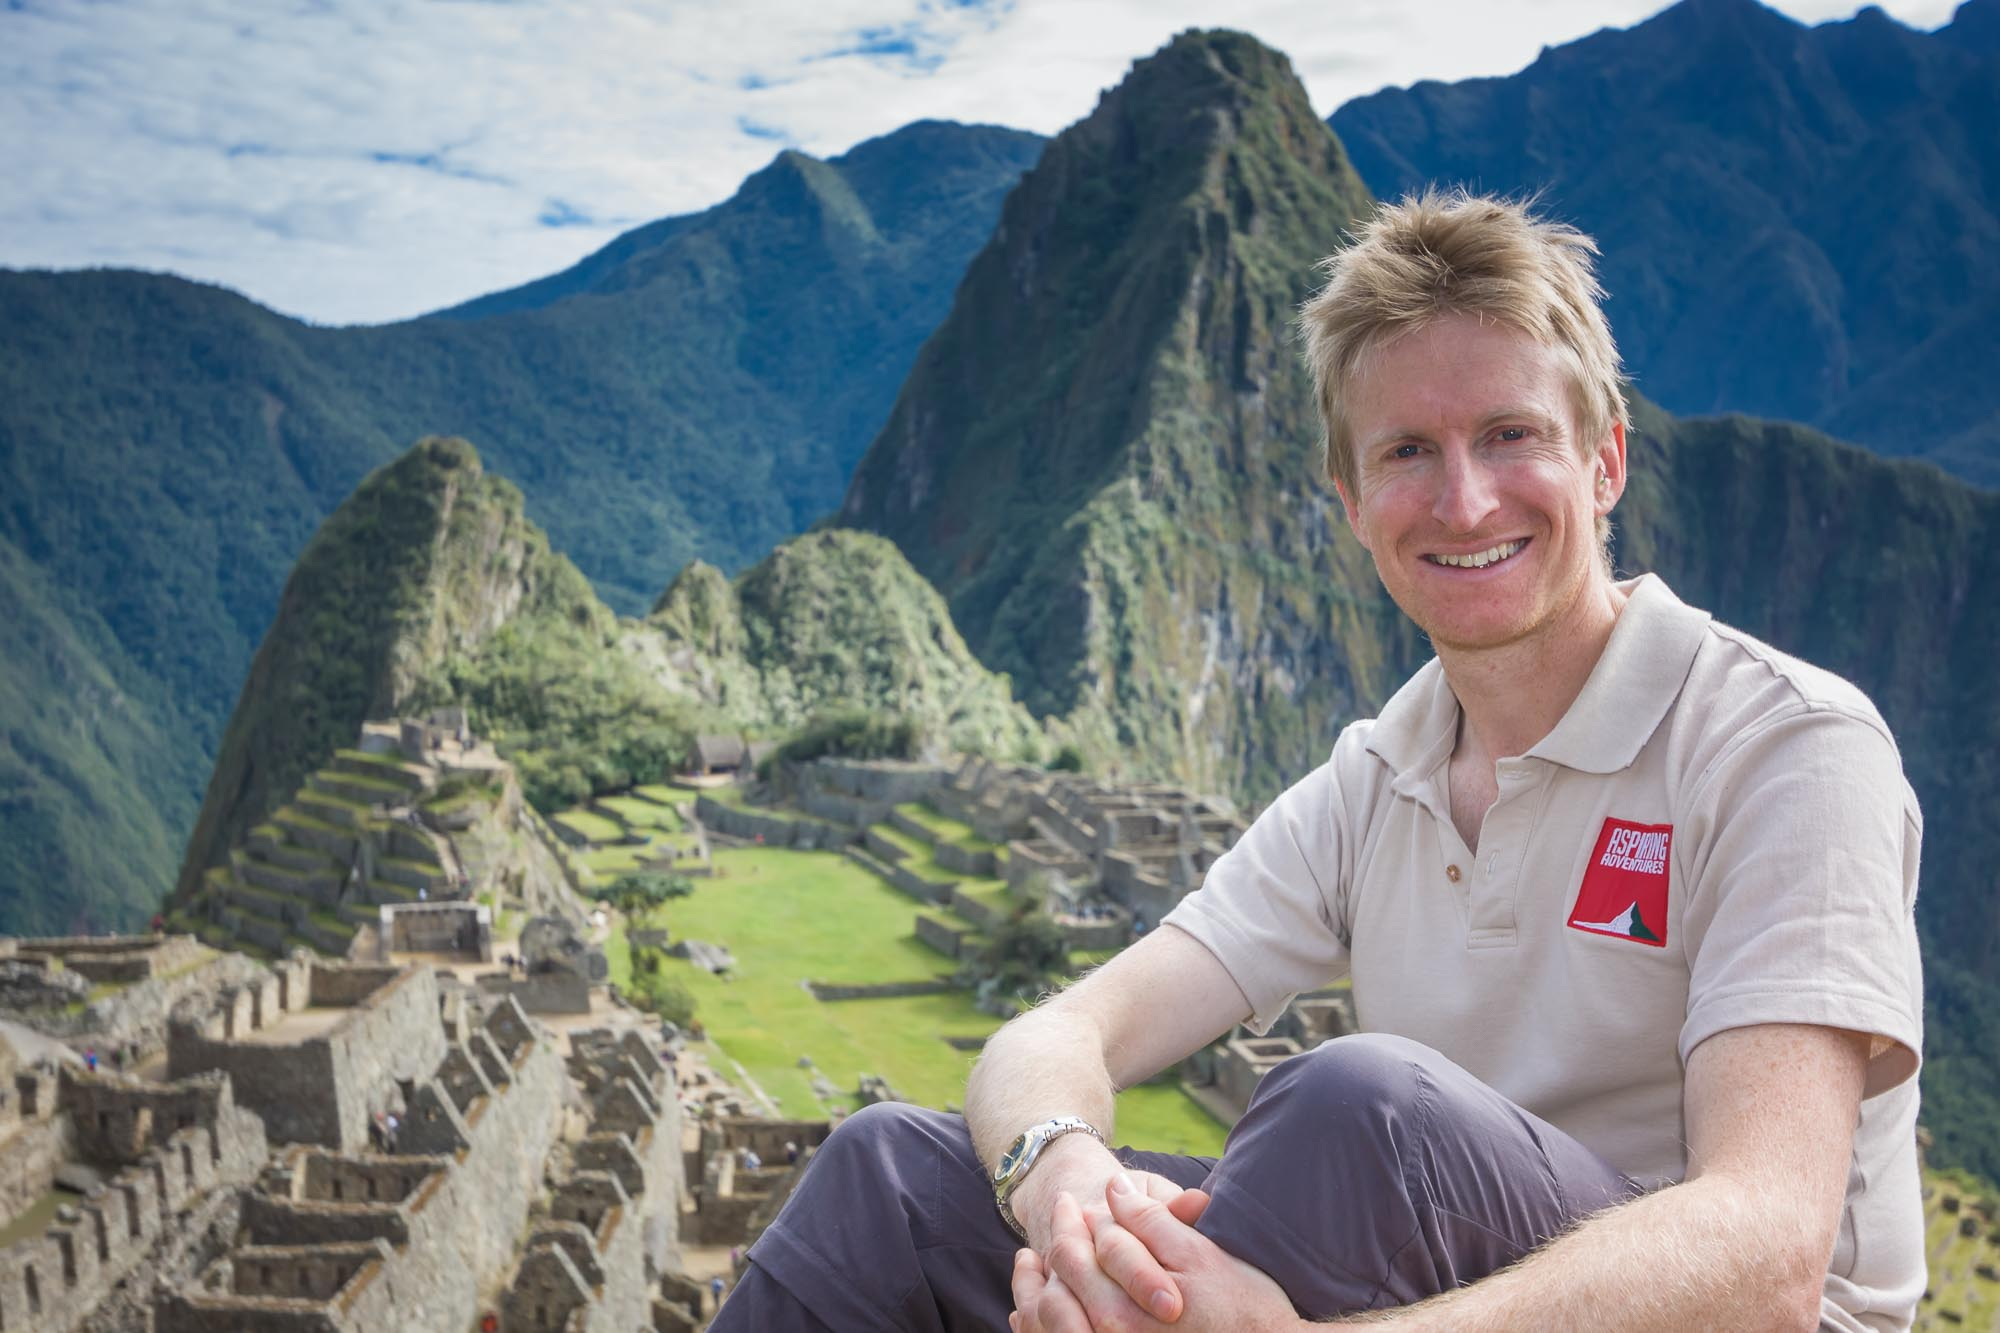 Aspiring's co-founder Steve Wilson is here to help you plan your private Peru tour